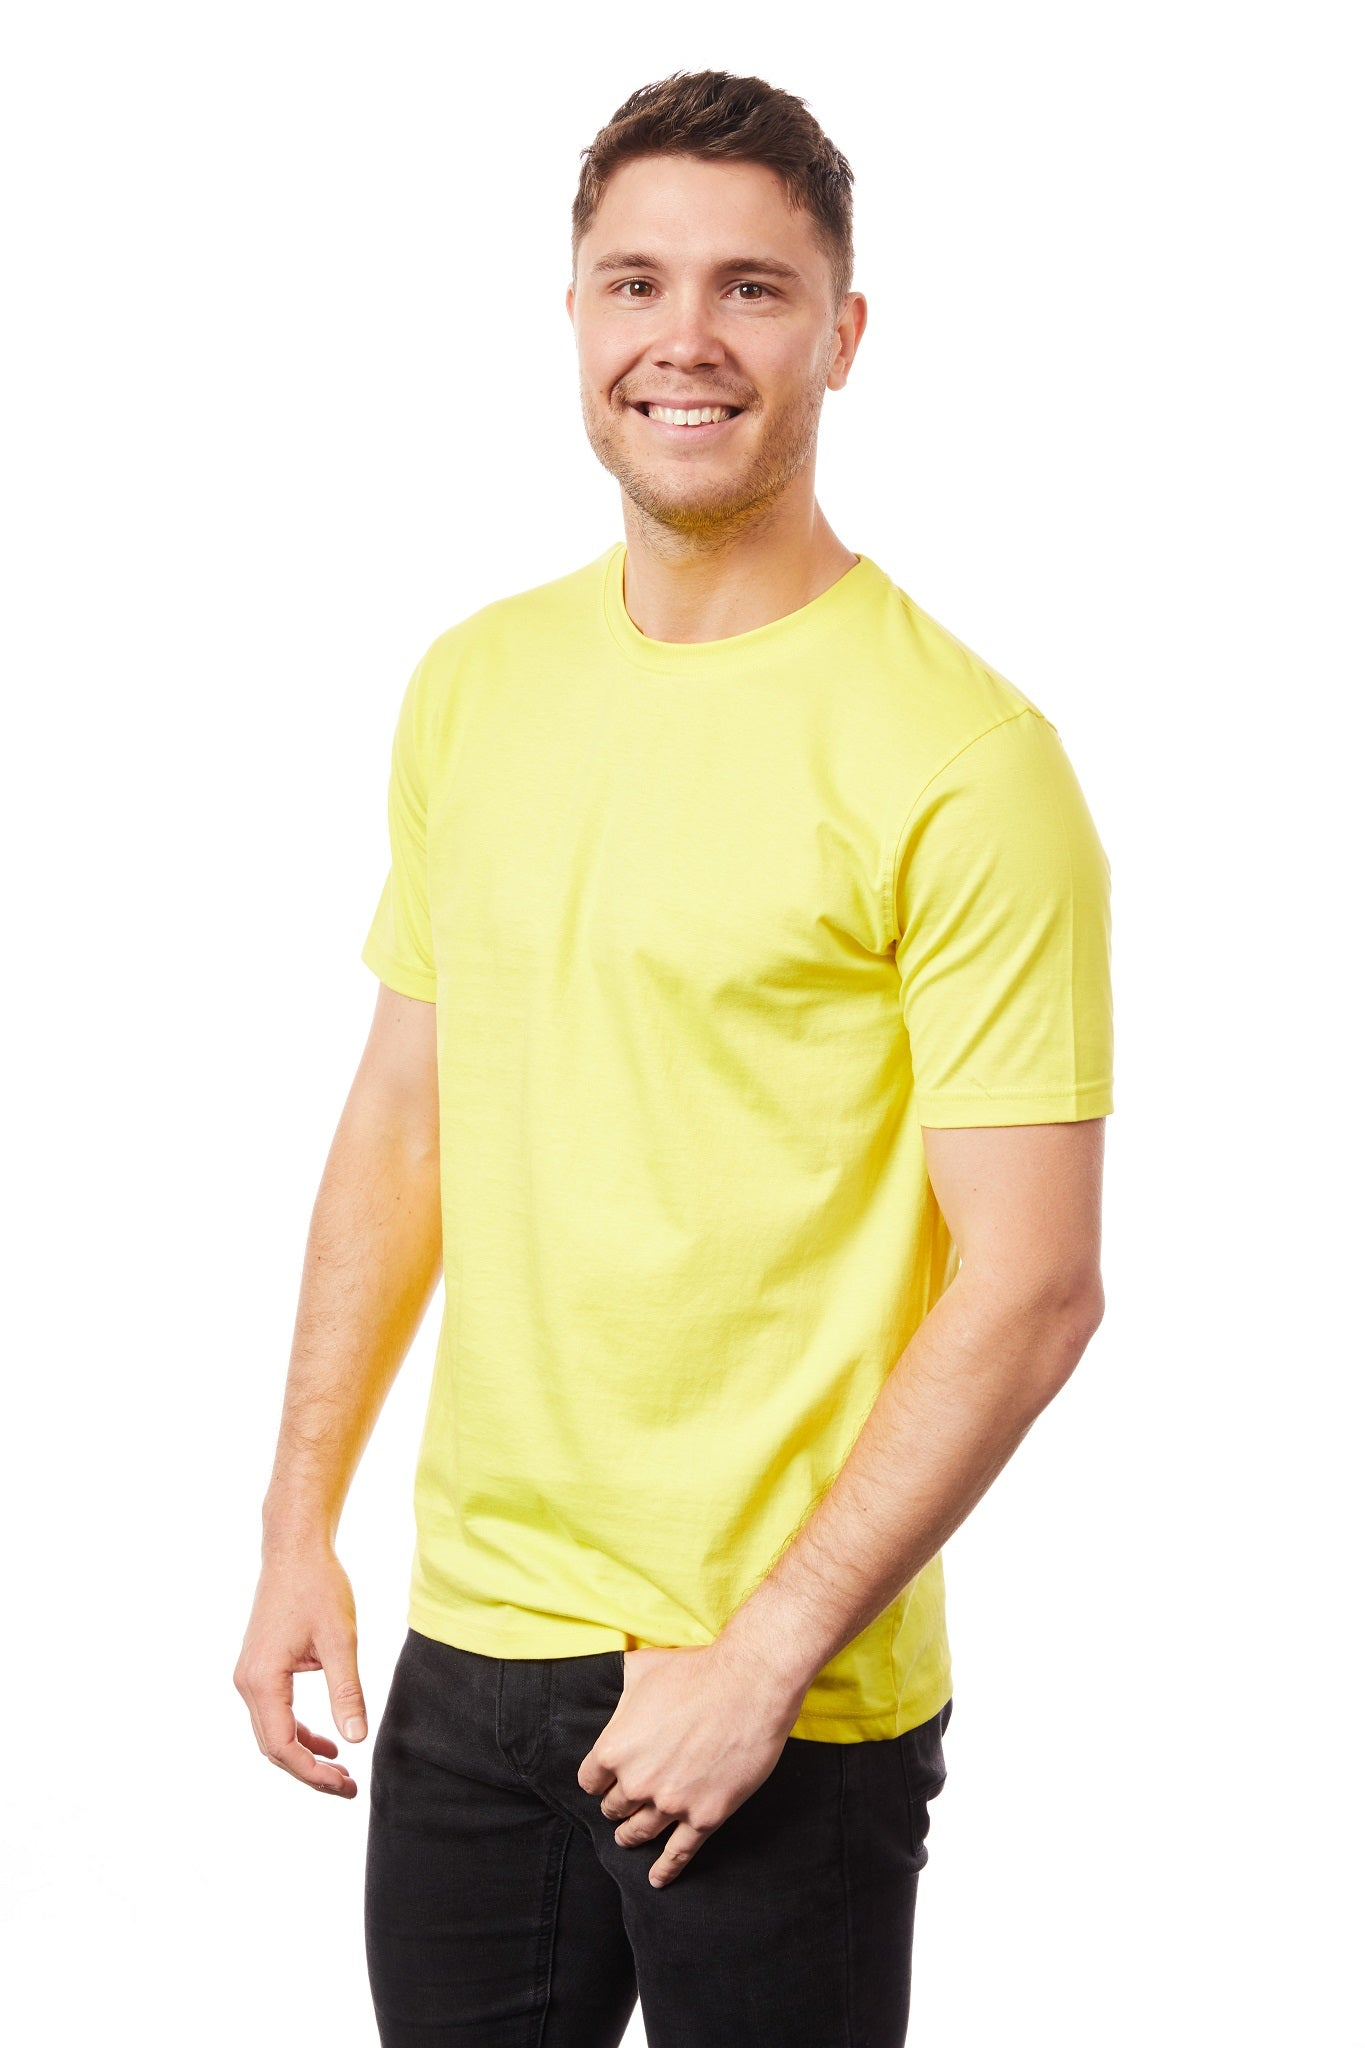 Tipsy Koala Men's Solid Yellow Round Neck